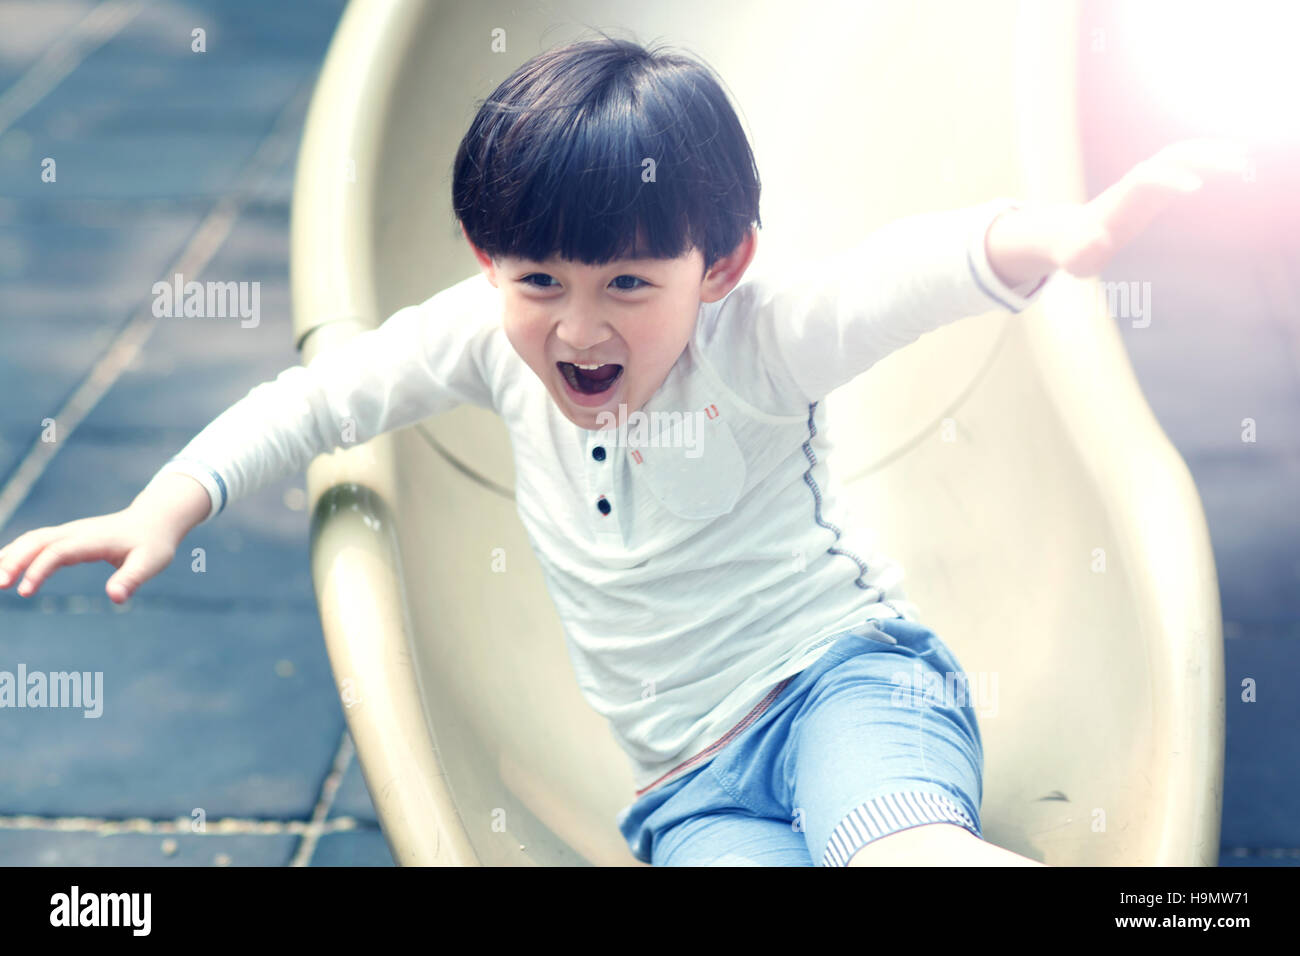 The little boy slides - Stock Image